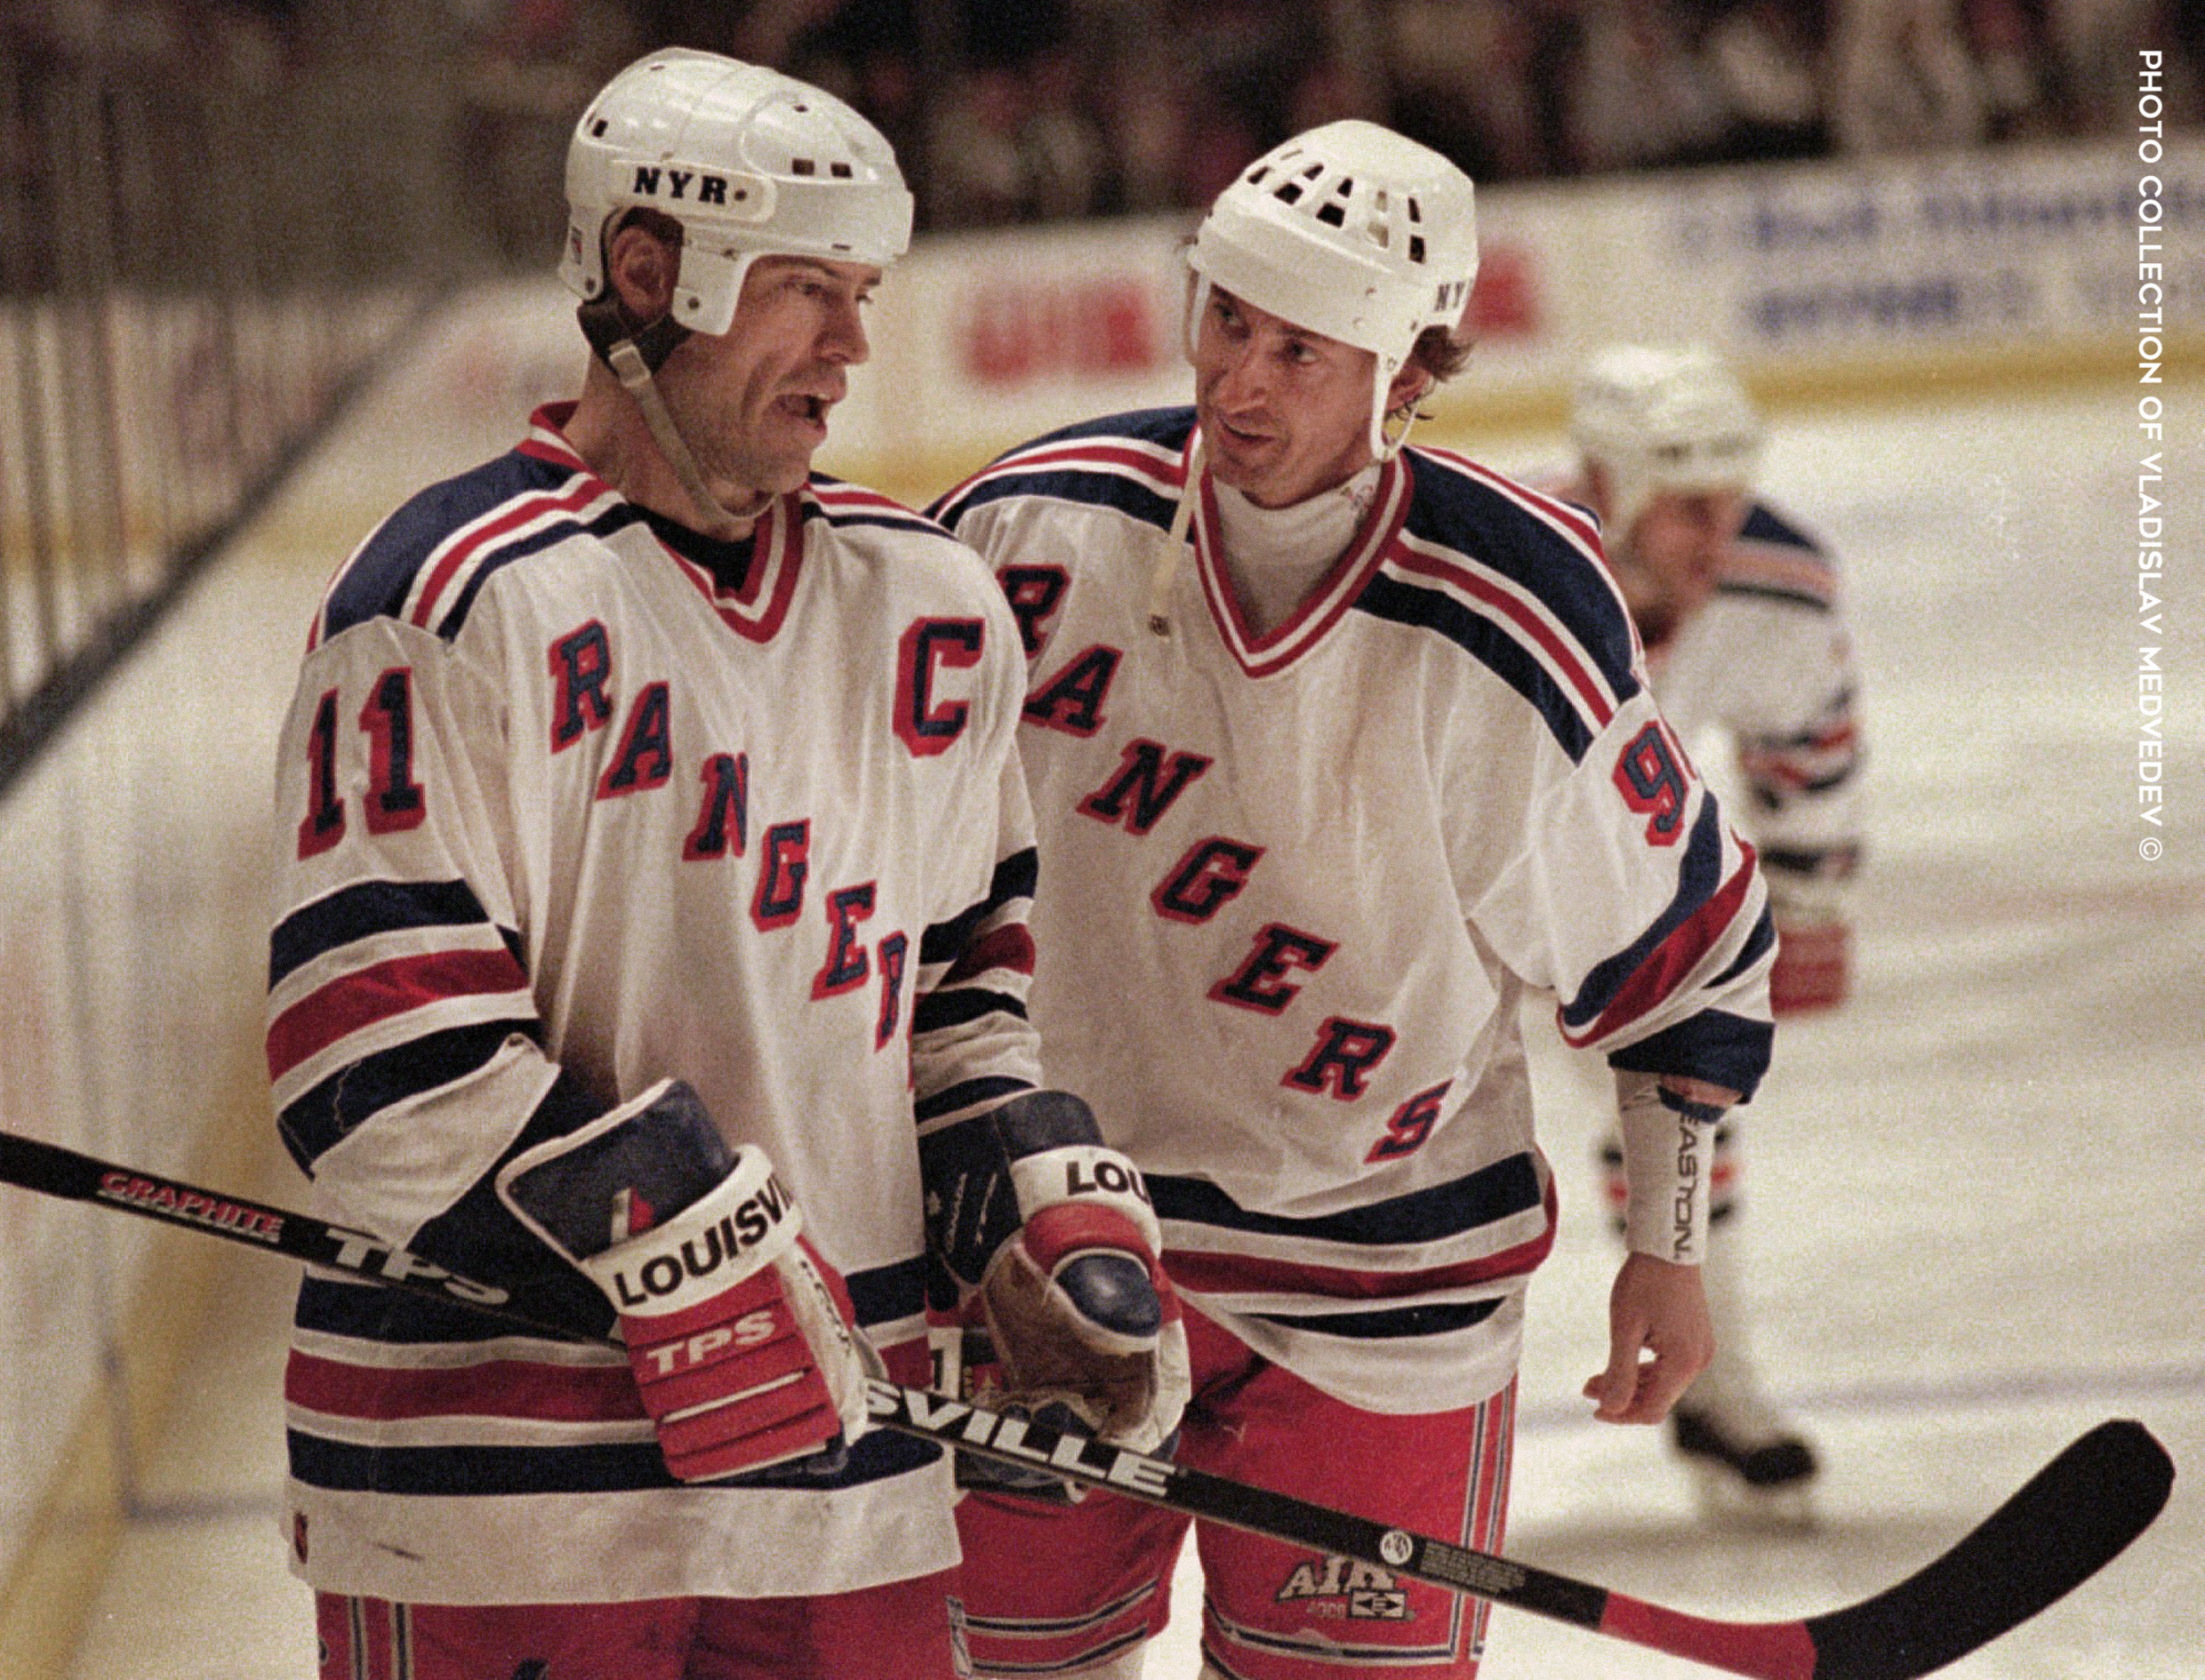 wayne_gretzky_and_mark_messier.jpg